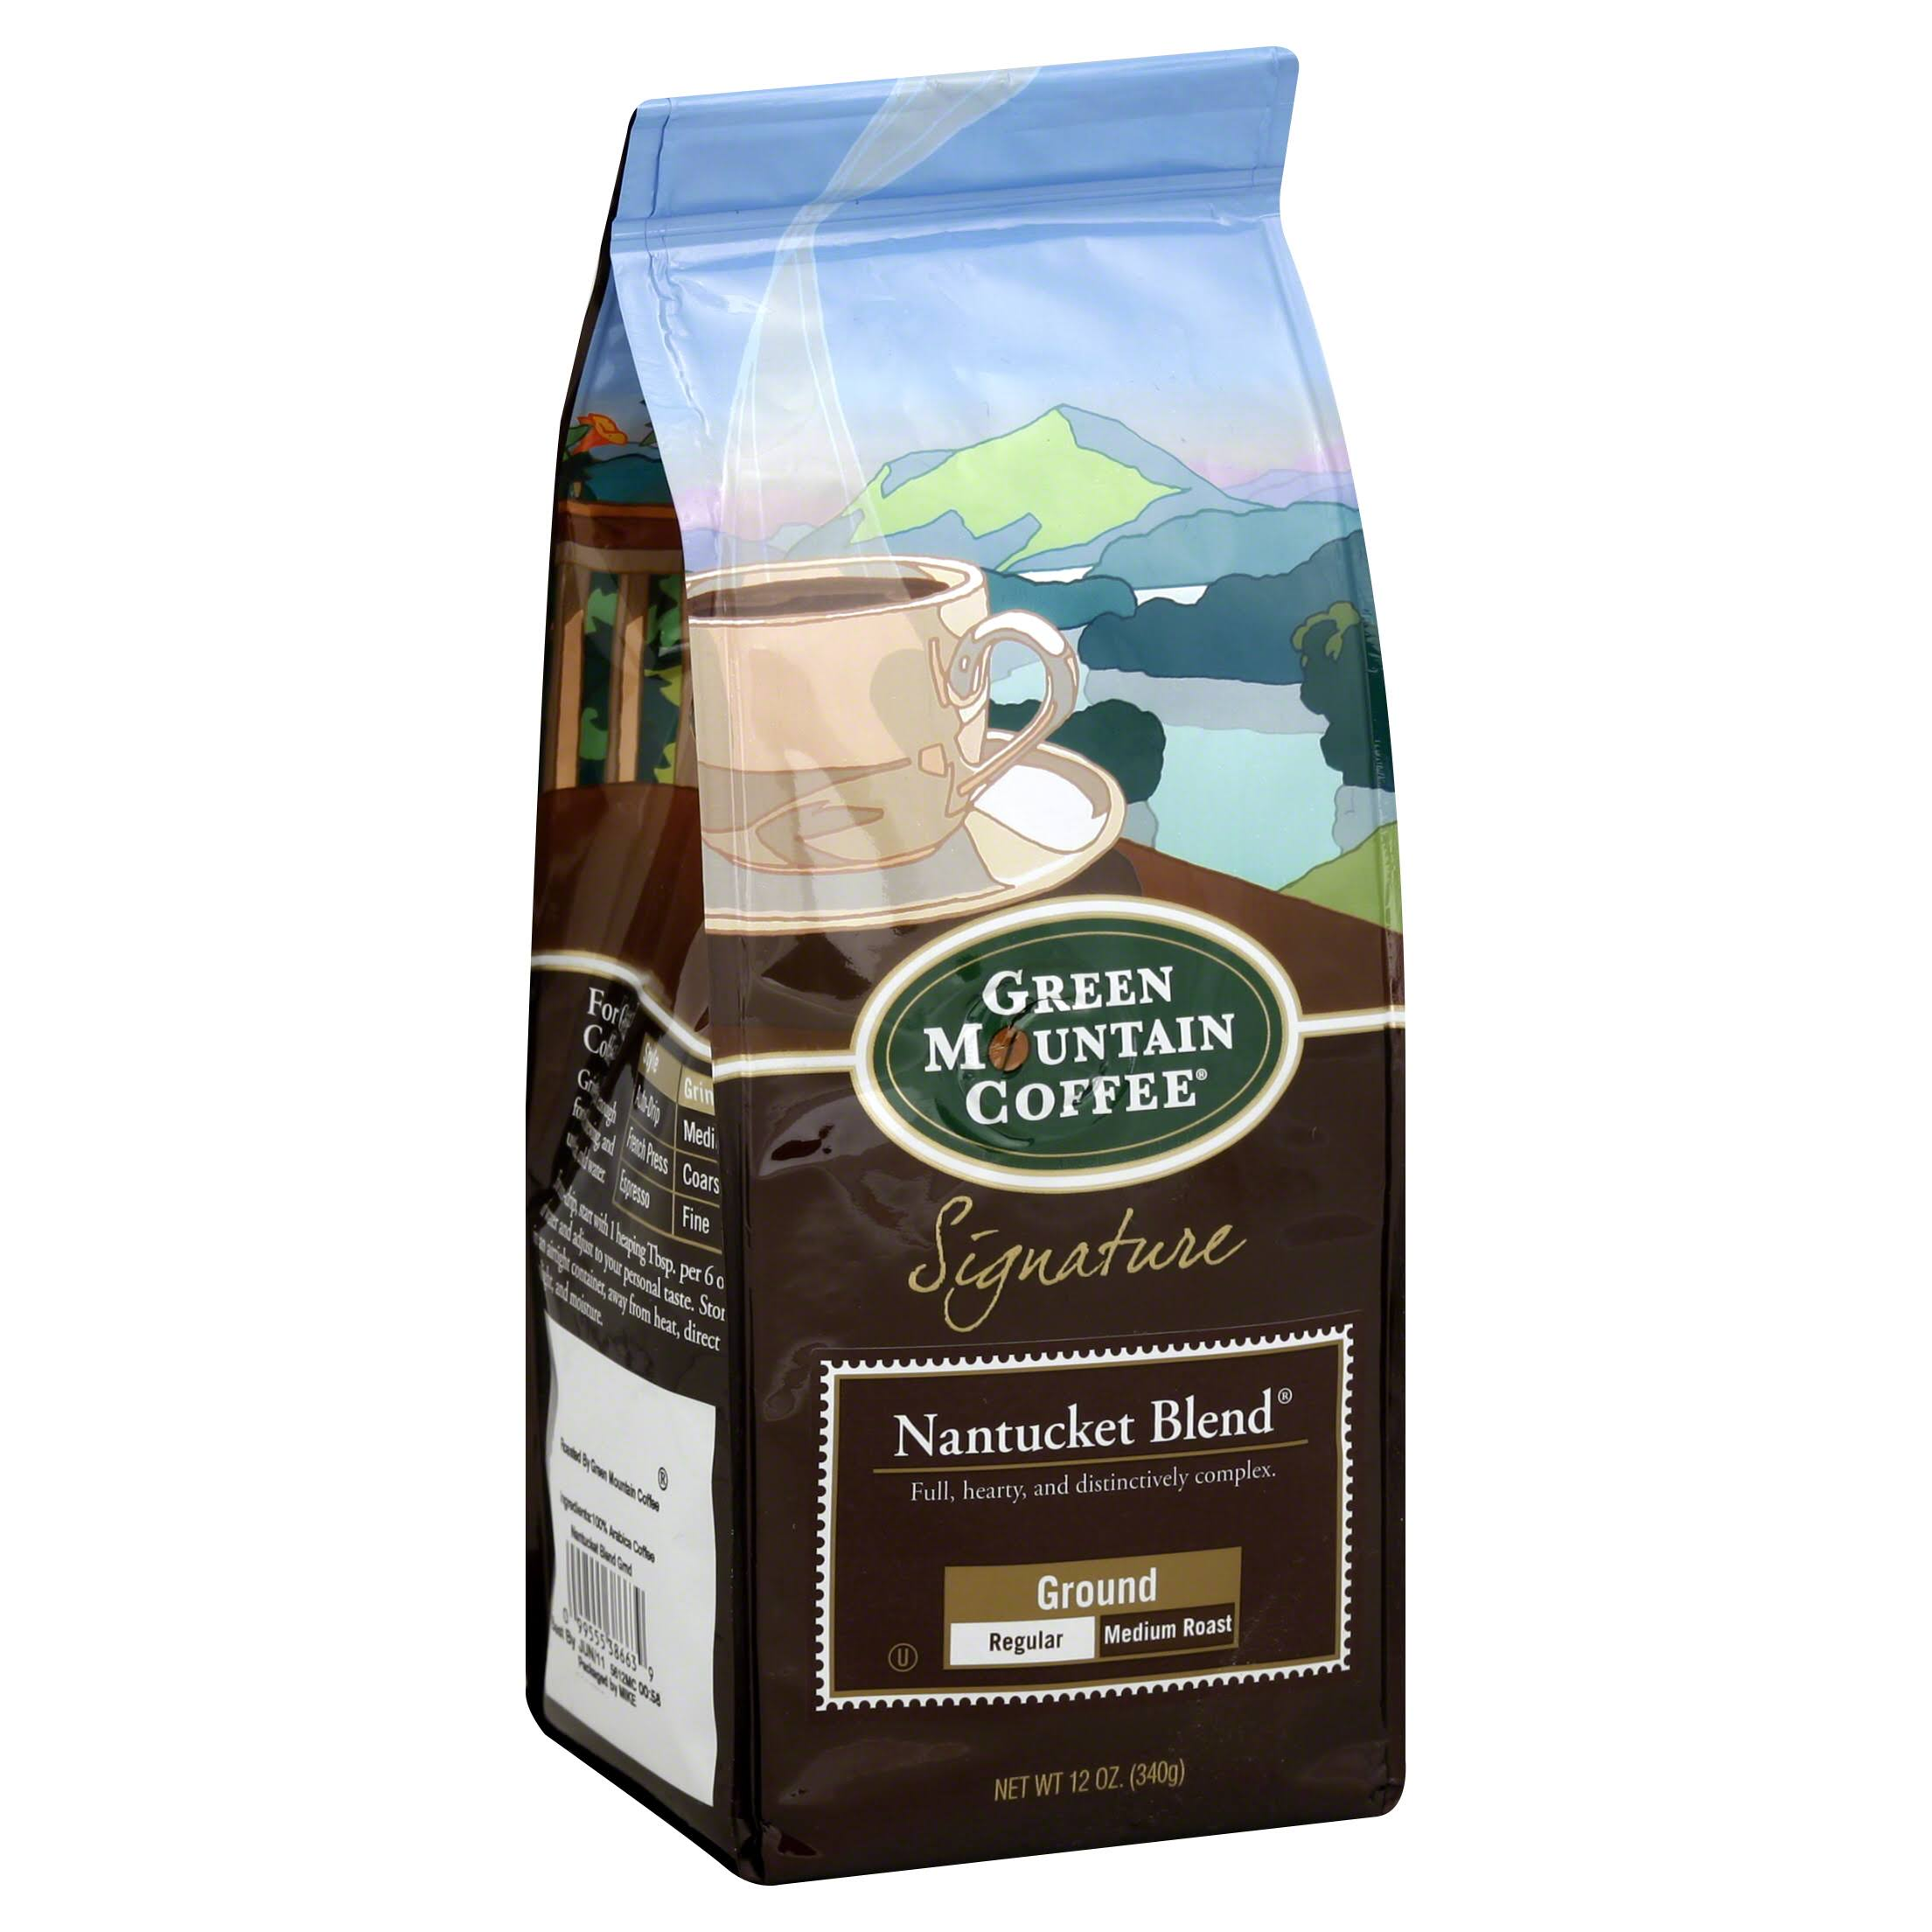 Green Mountain Coffee Signature Nantucket Blend Ground Regular Coffee - Medium Roast, 12oz